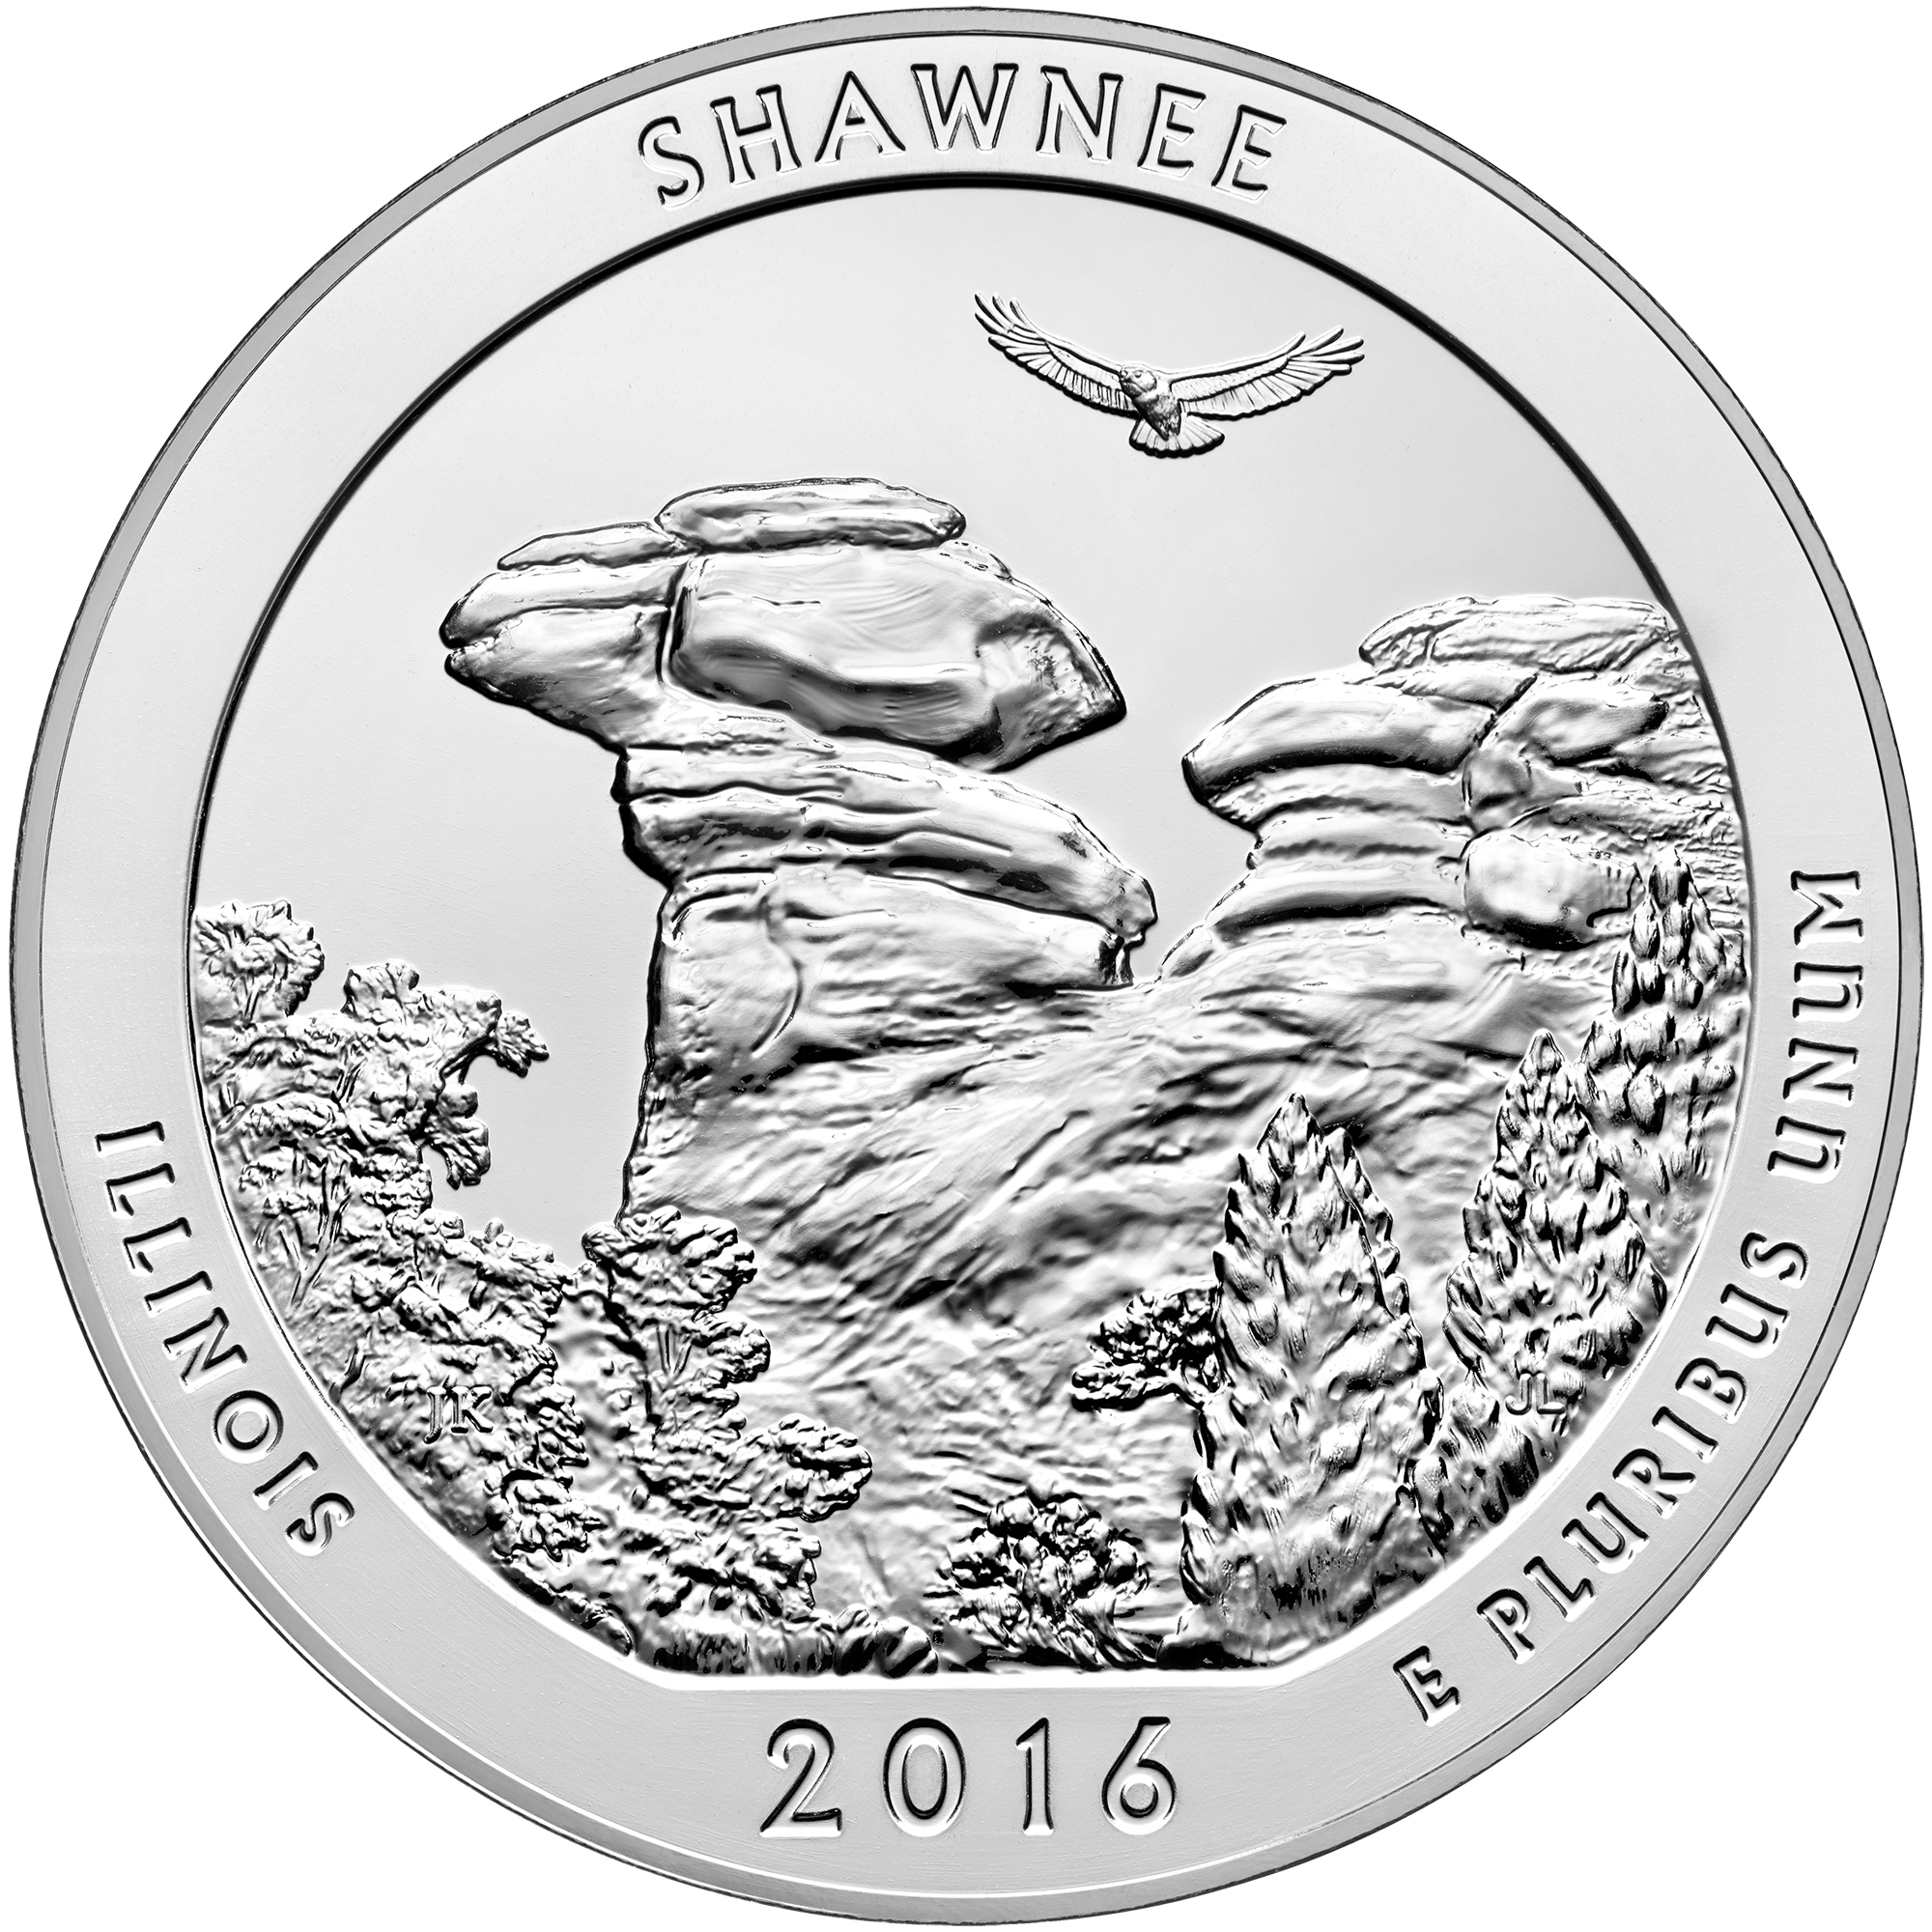 2016 America The Beautiful Quarters Five Ounce Silver Bullion Coin Shawnee Illinois Reverse